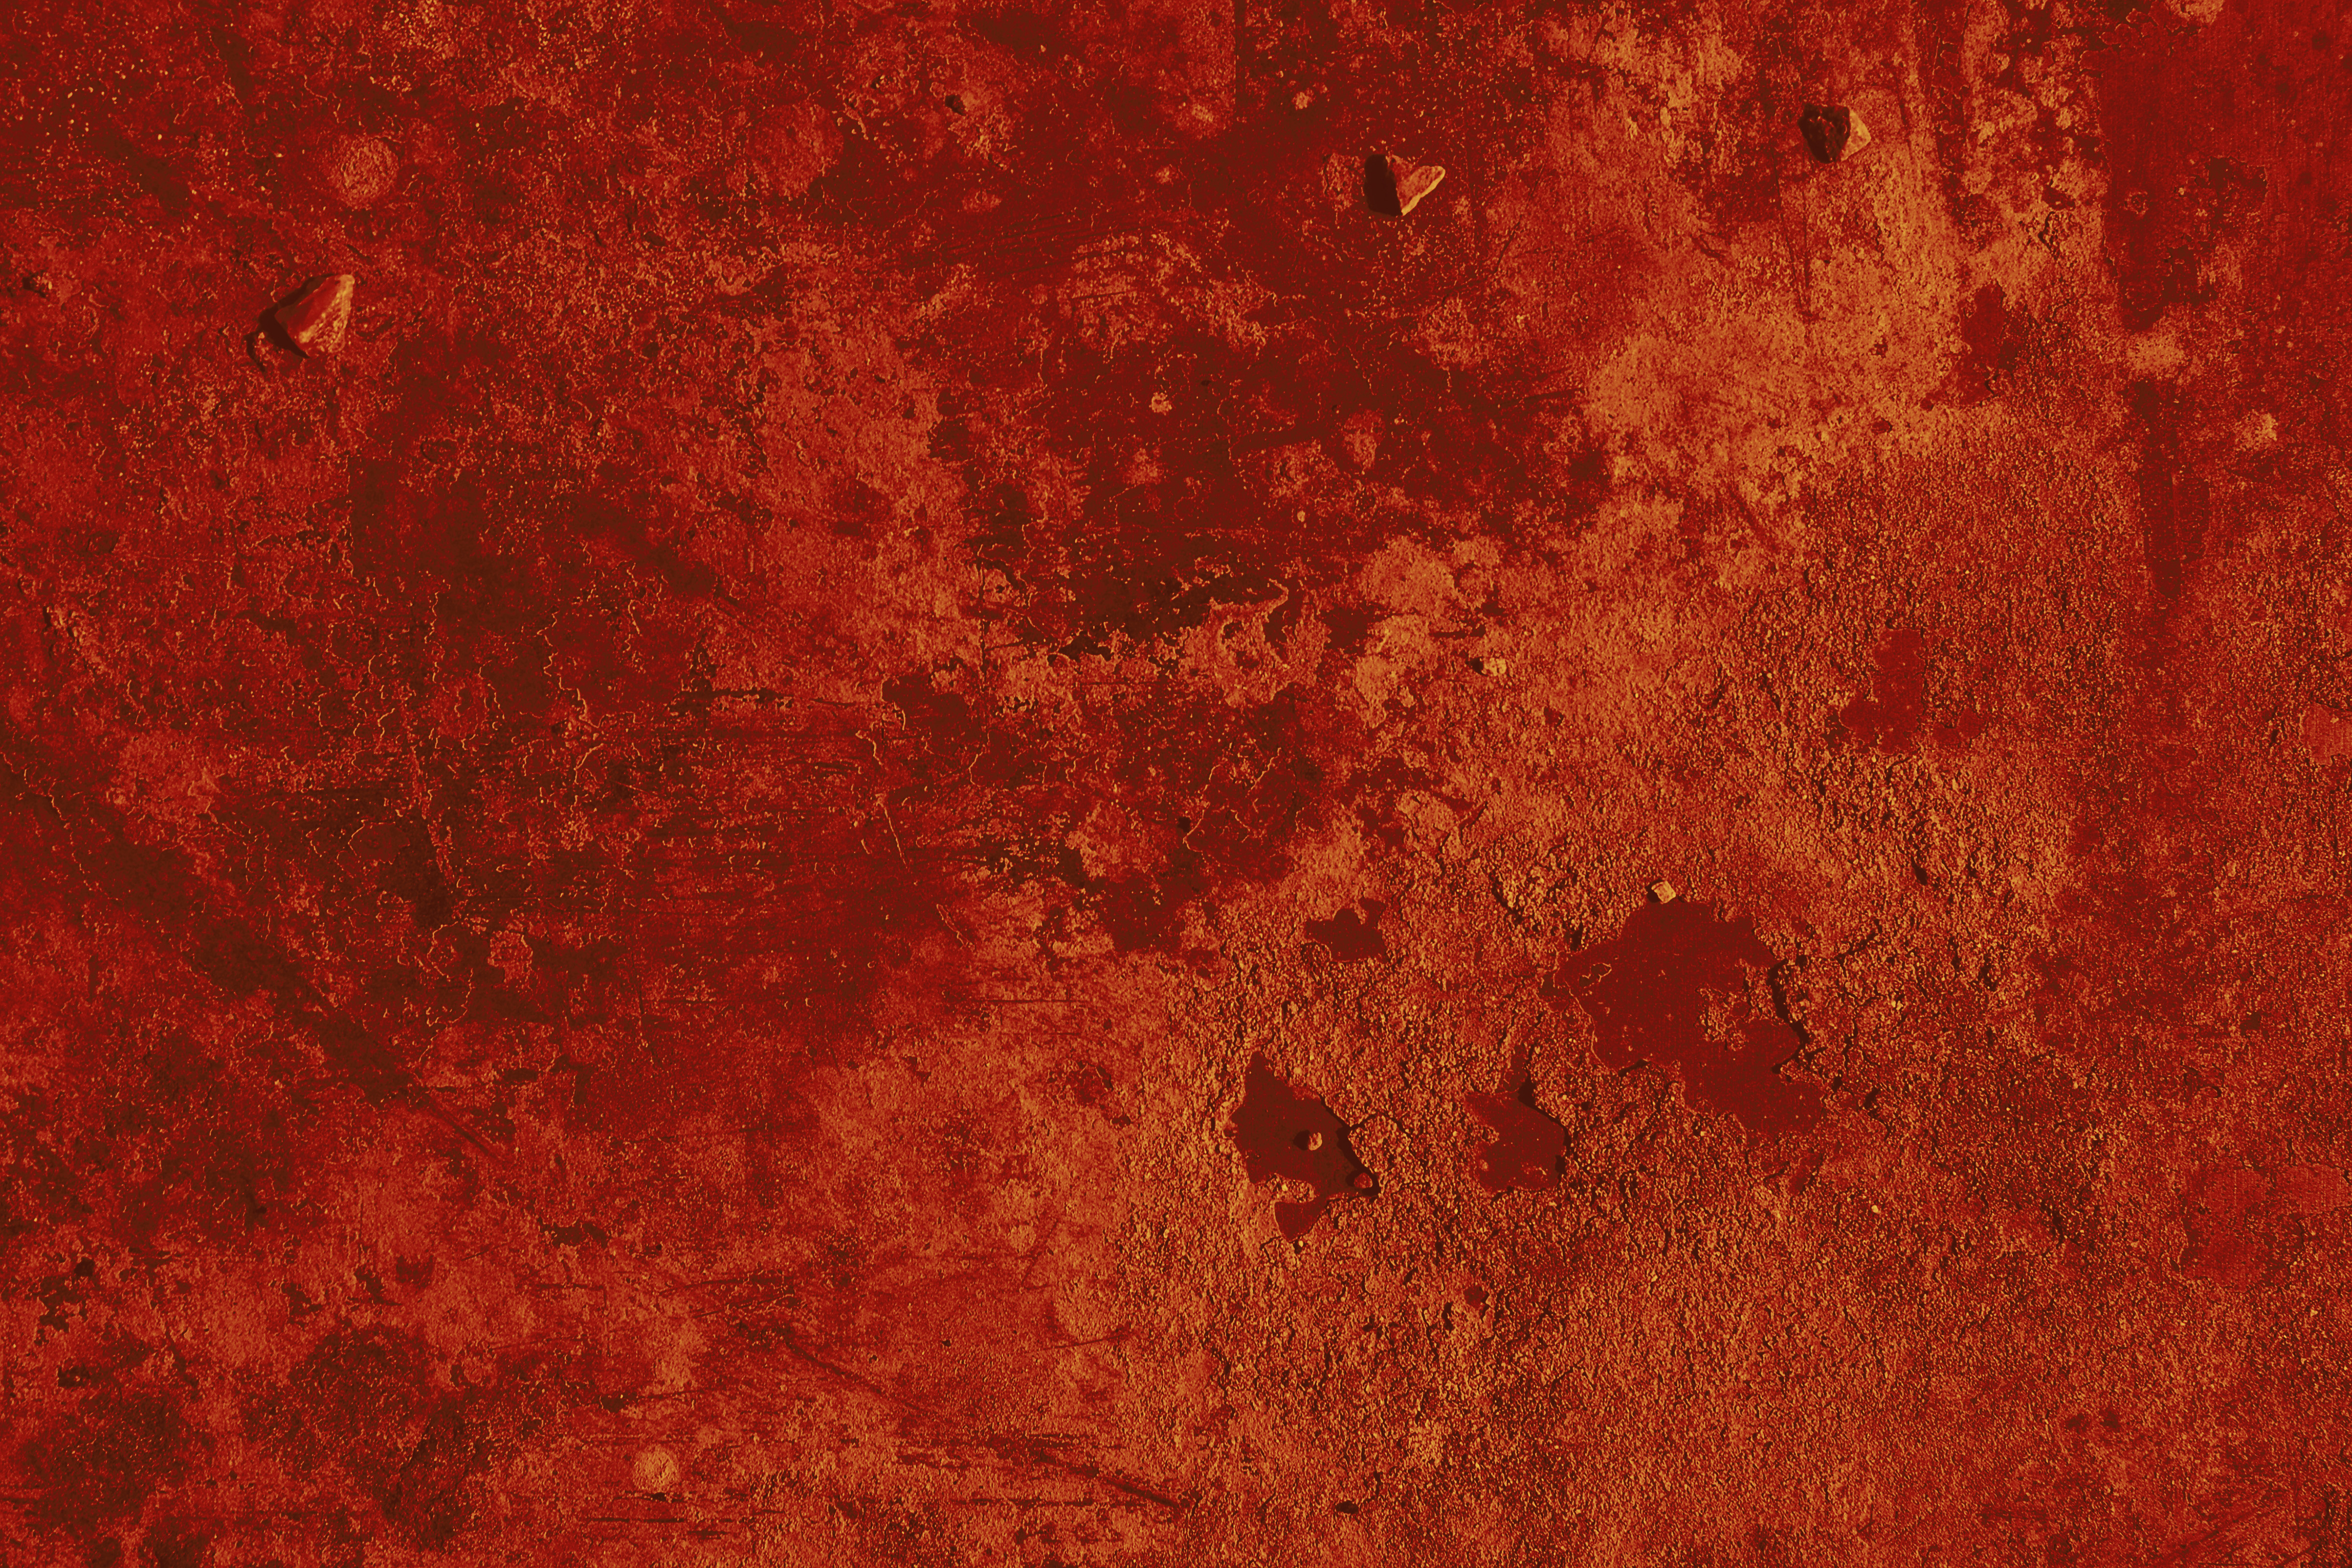 Red Grunge Background Related Keywords & Suggestions  Red Grunge